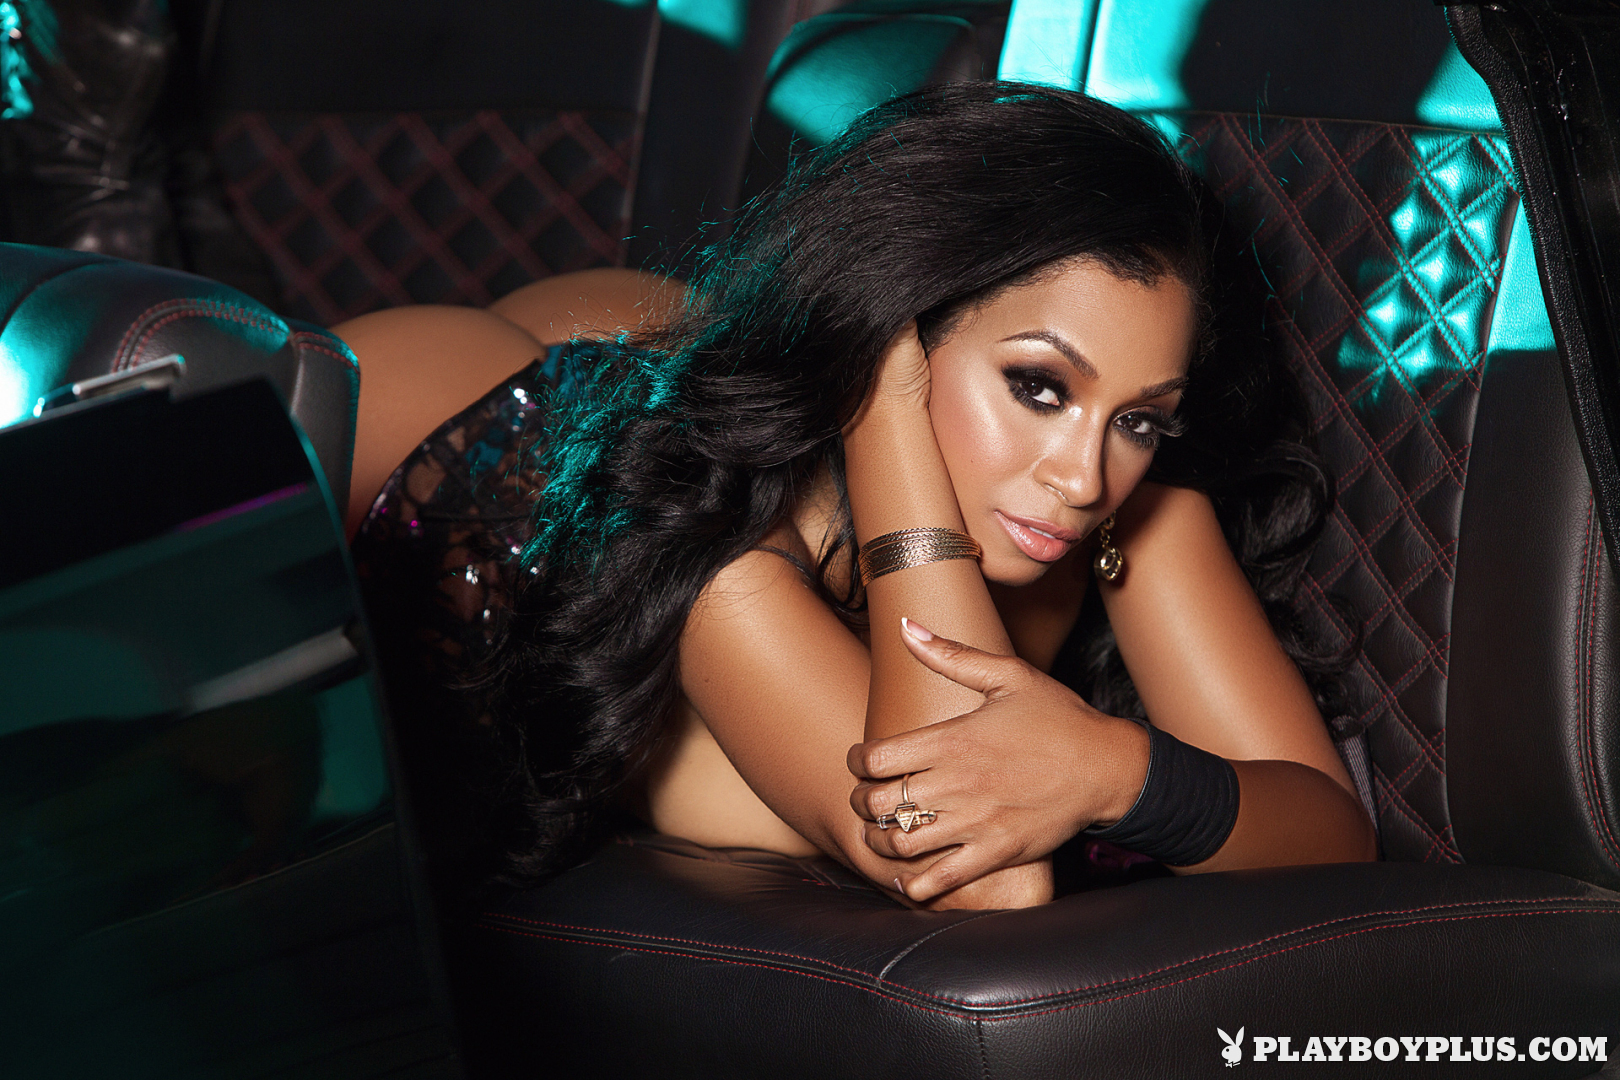 Playboy Cybergirl - Karlie Redd Nude Photos & Videos at Playboy Plus!